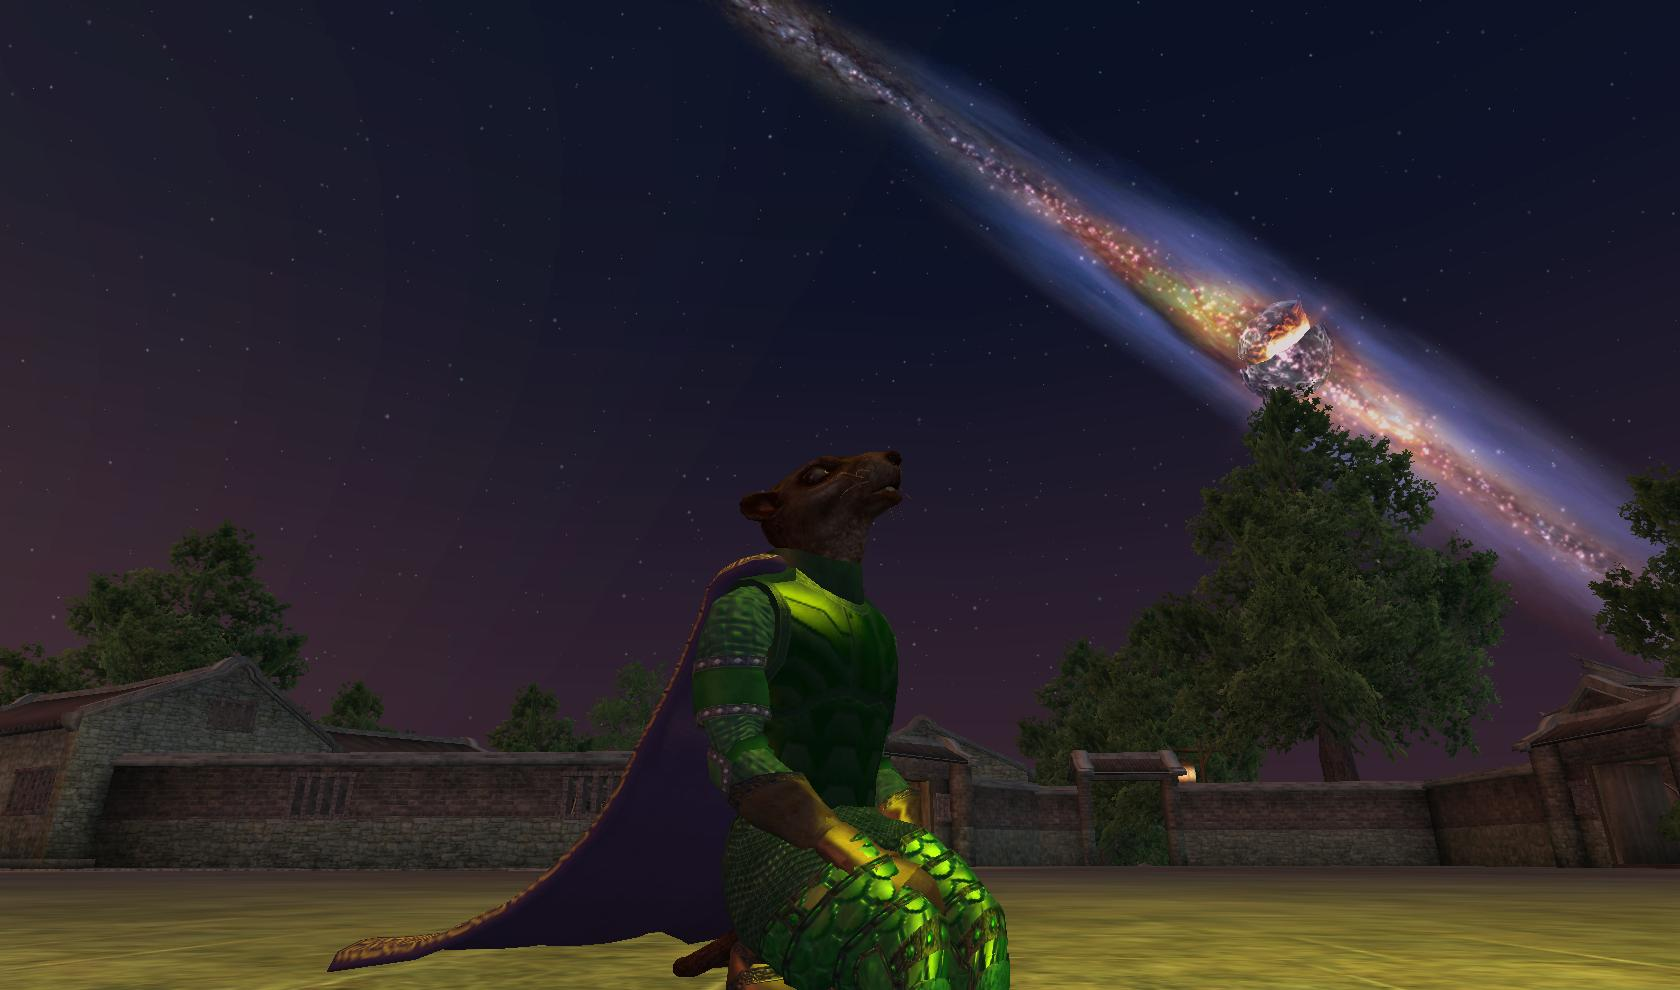 Maltheas rests, on the Isle of Mara in Everquest 22